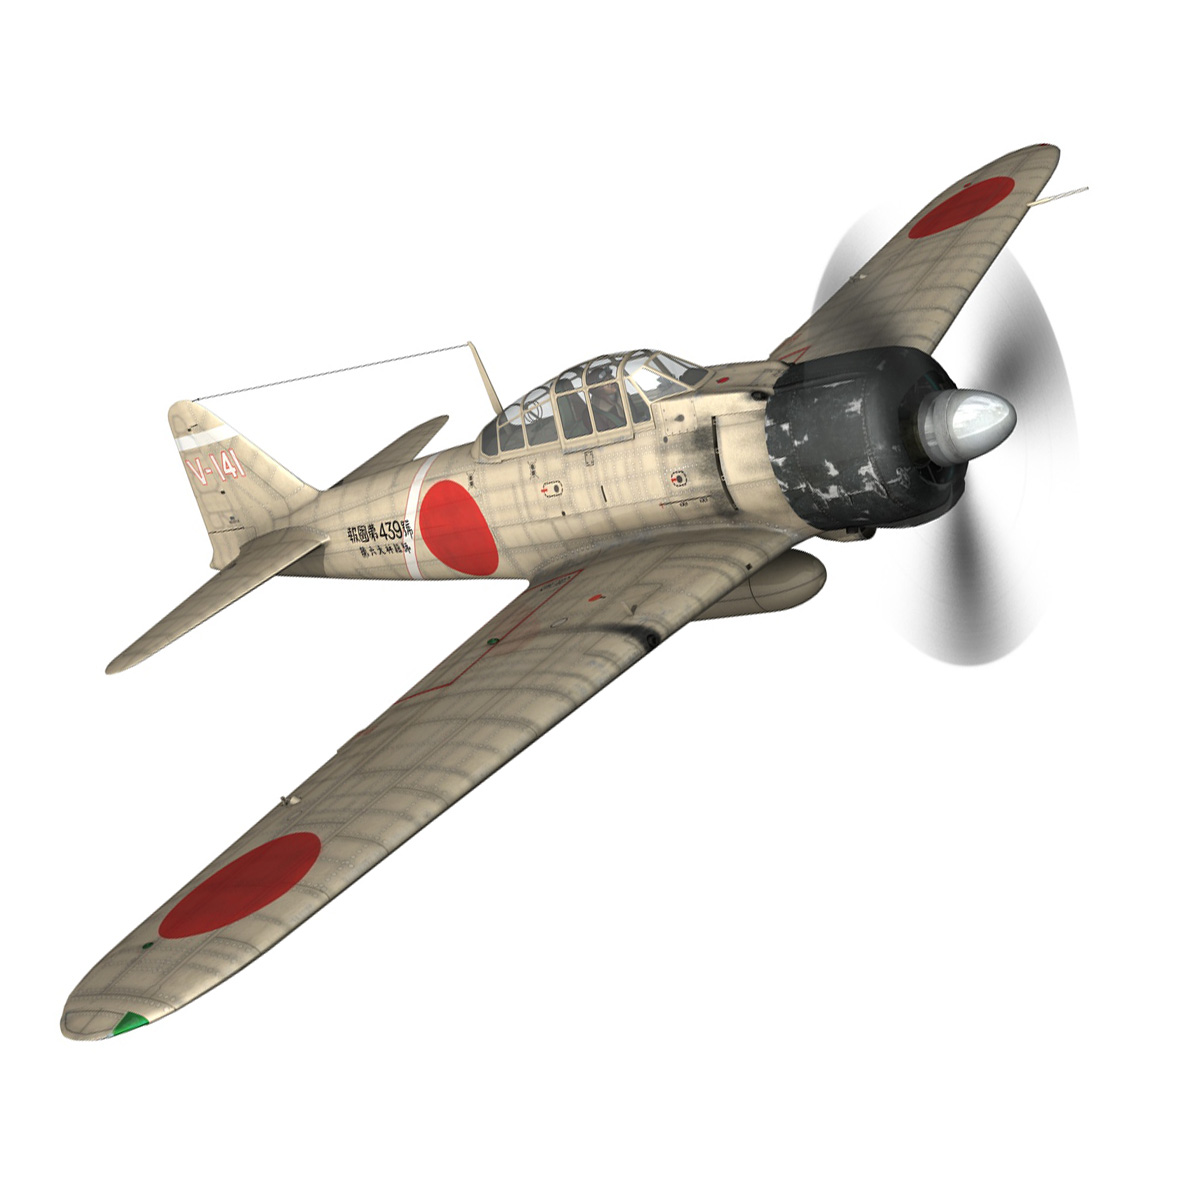 mitsubishi a6m2 zero – tainan air group 3d model fbx lwo obj 272731